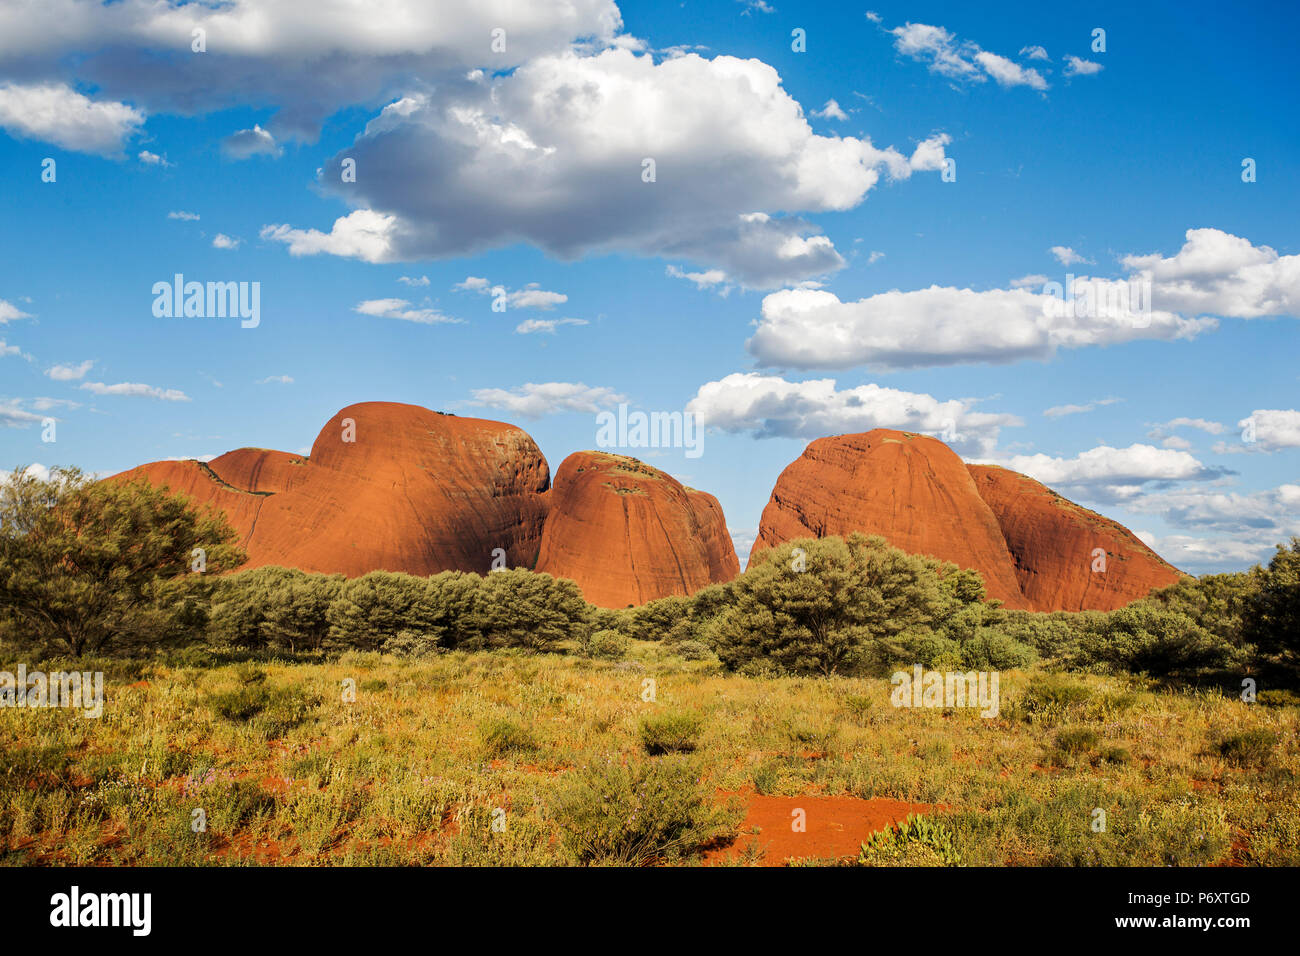 Kata Tjuta Red Centre. Northern Territory, Australien Stockbild